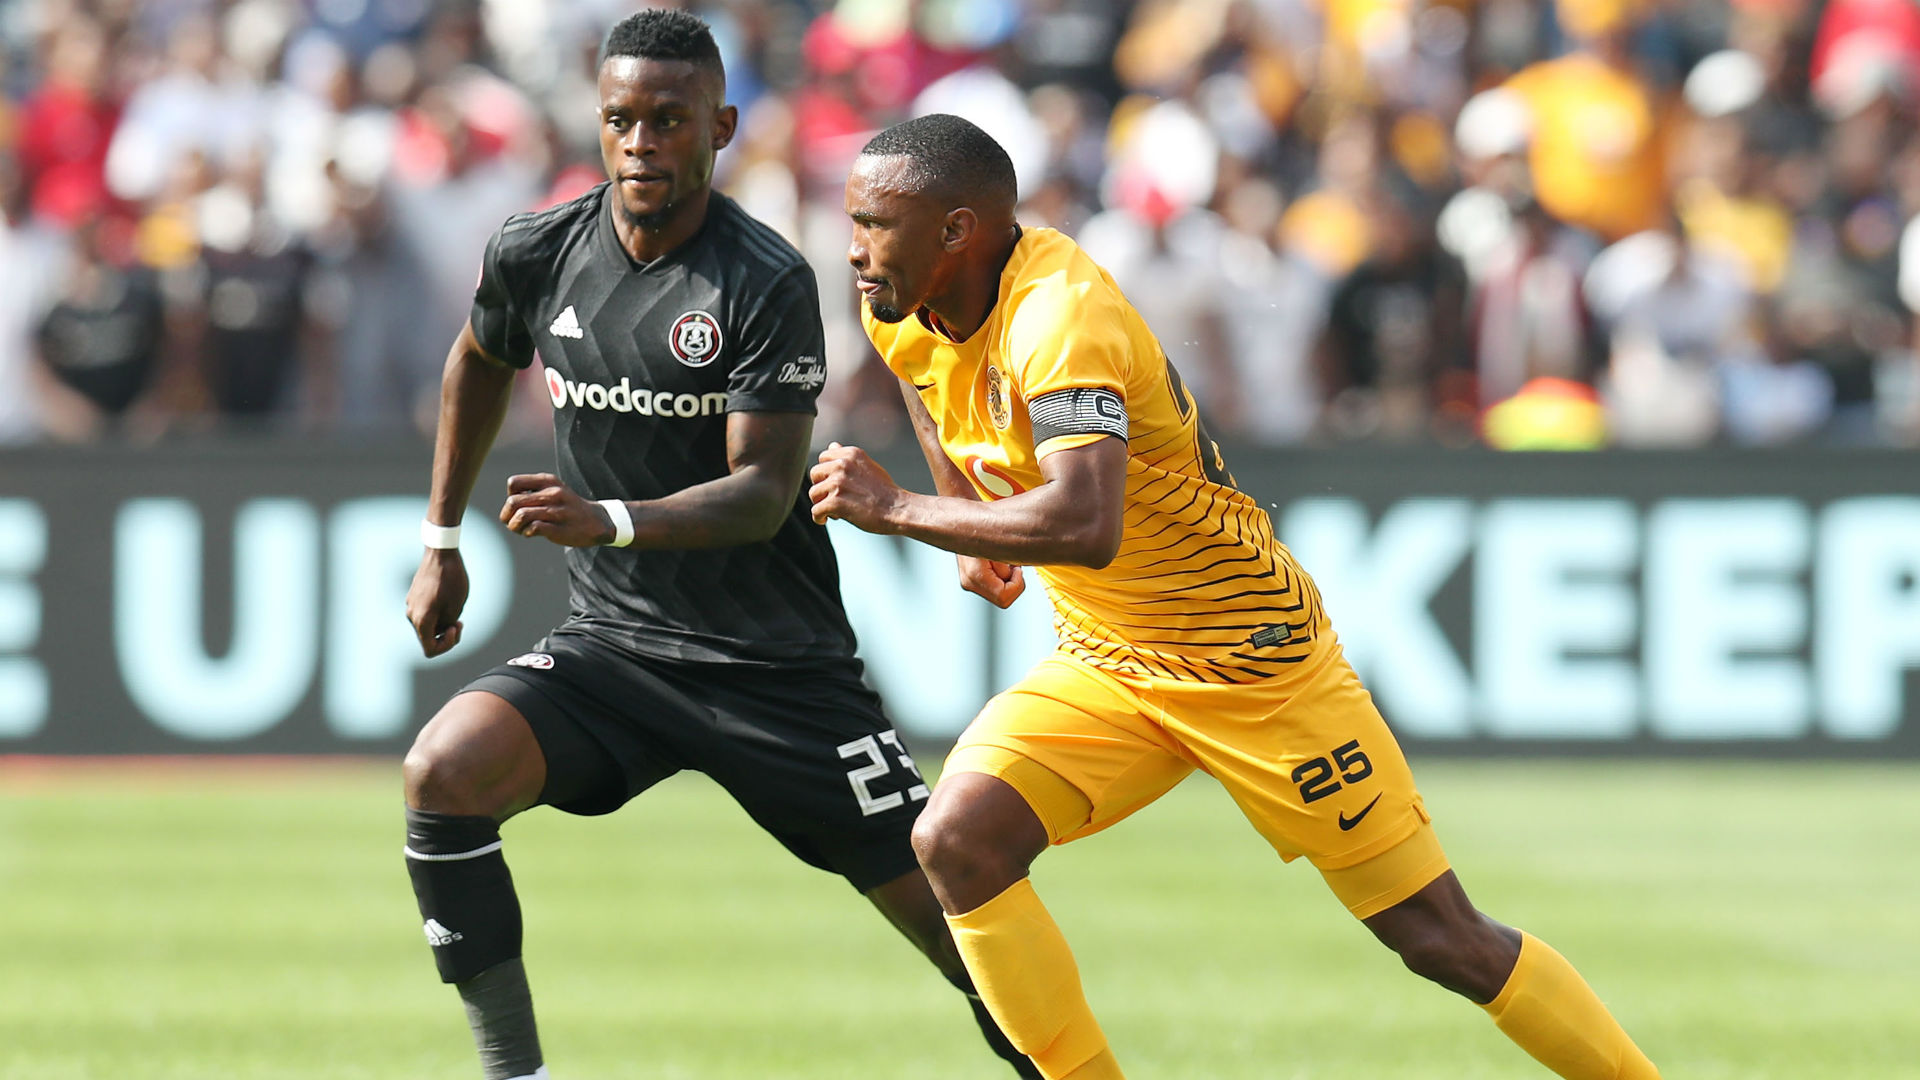 Innocent Maela, Orlando Pirates & Bernard Parker, Kaizer Chiefs, February 2019